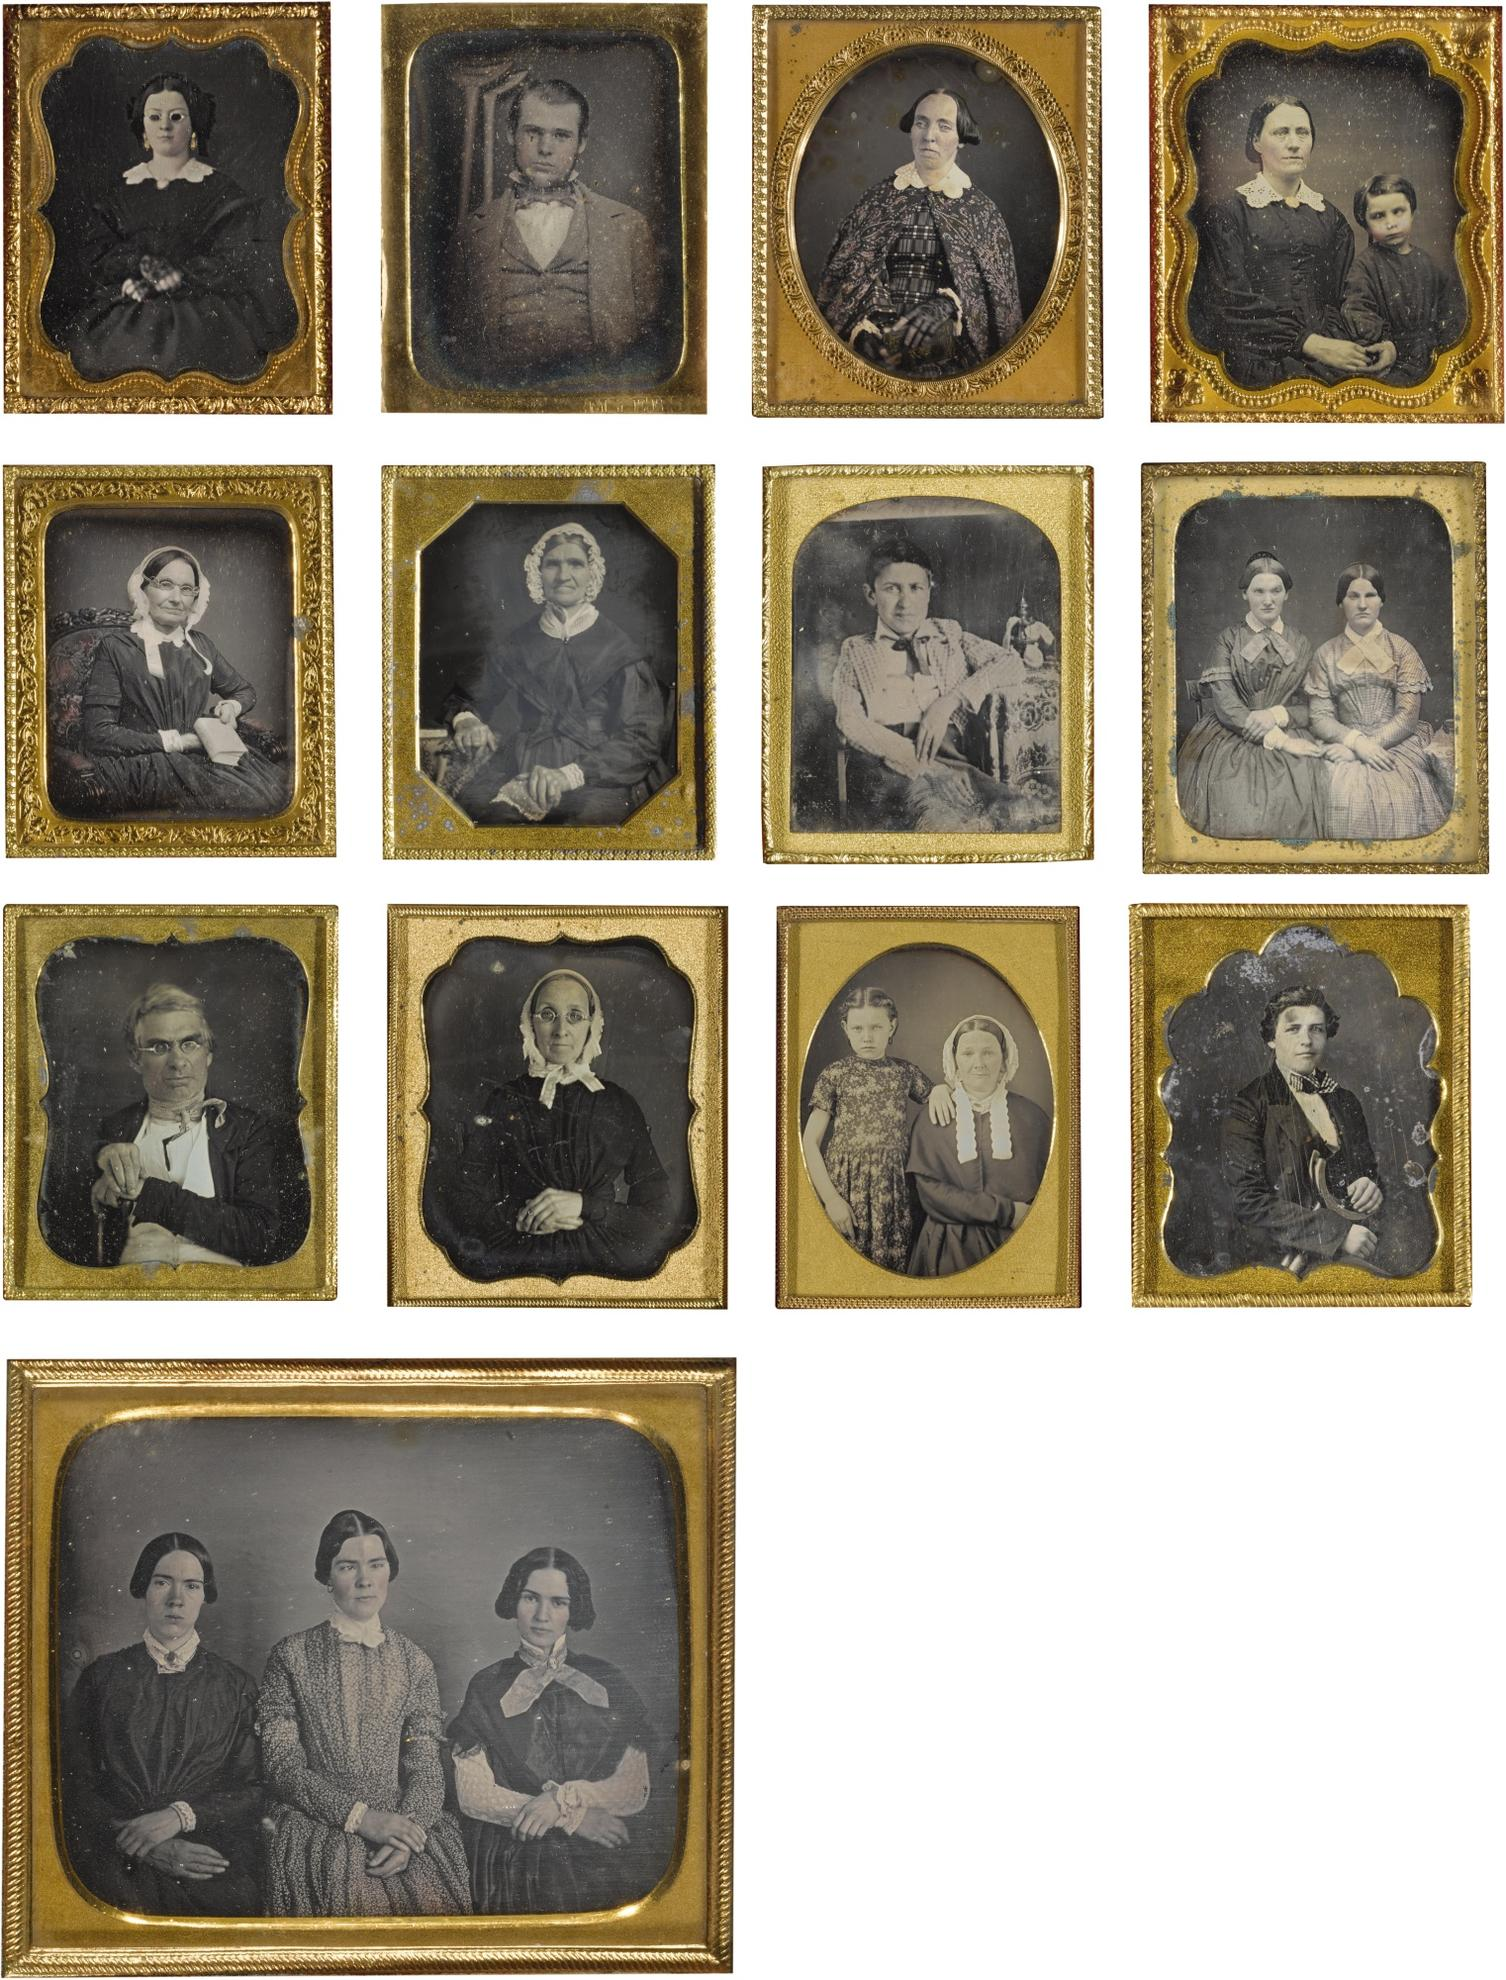 Anonymous American Photographers - Selected Portraits Of Patients And Persons With Physical Abnormalities-1850